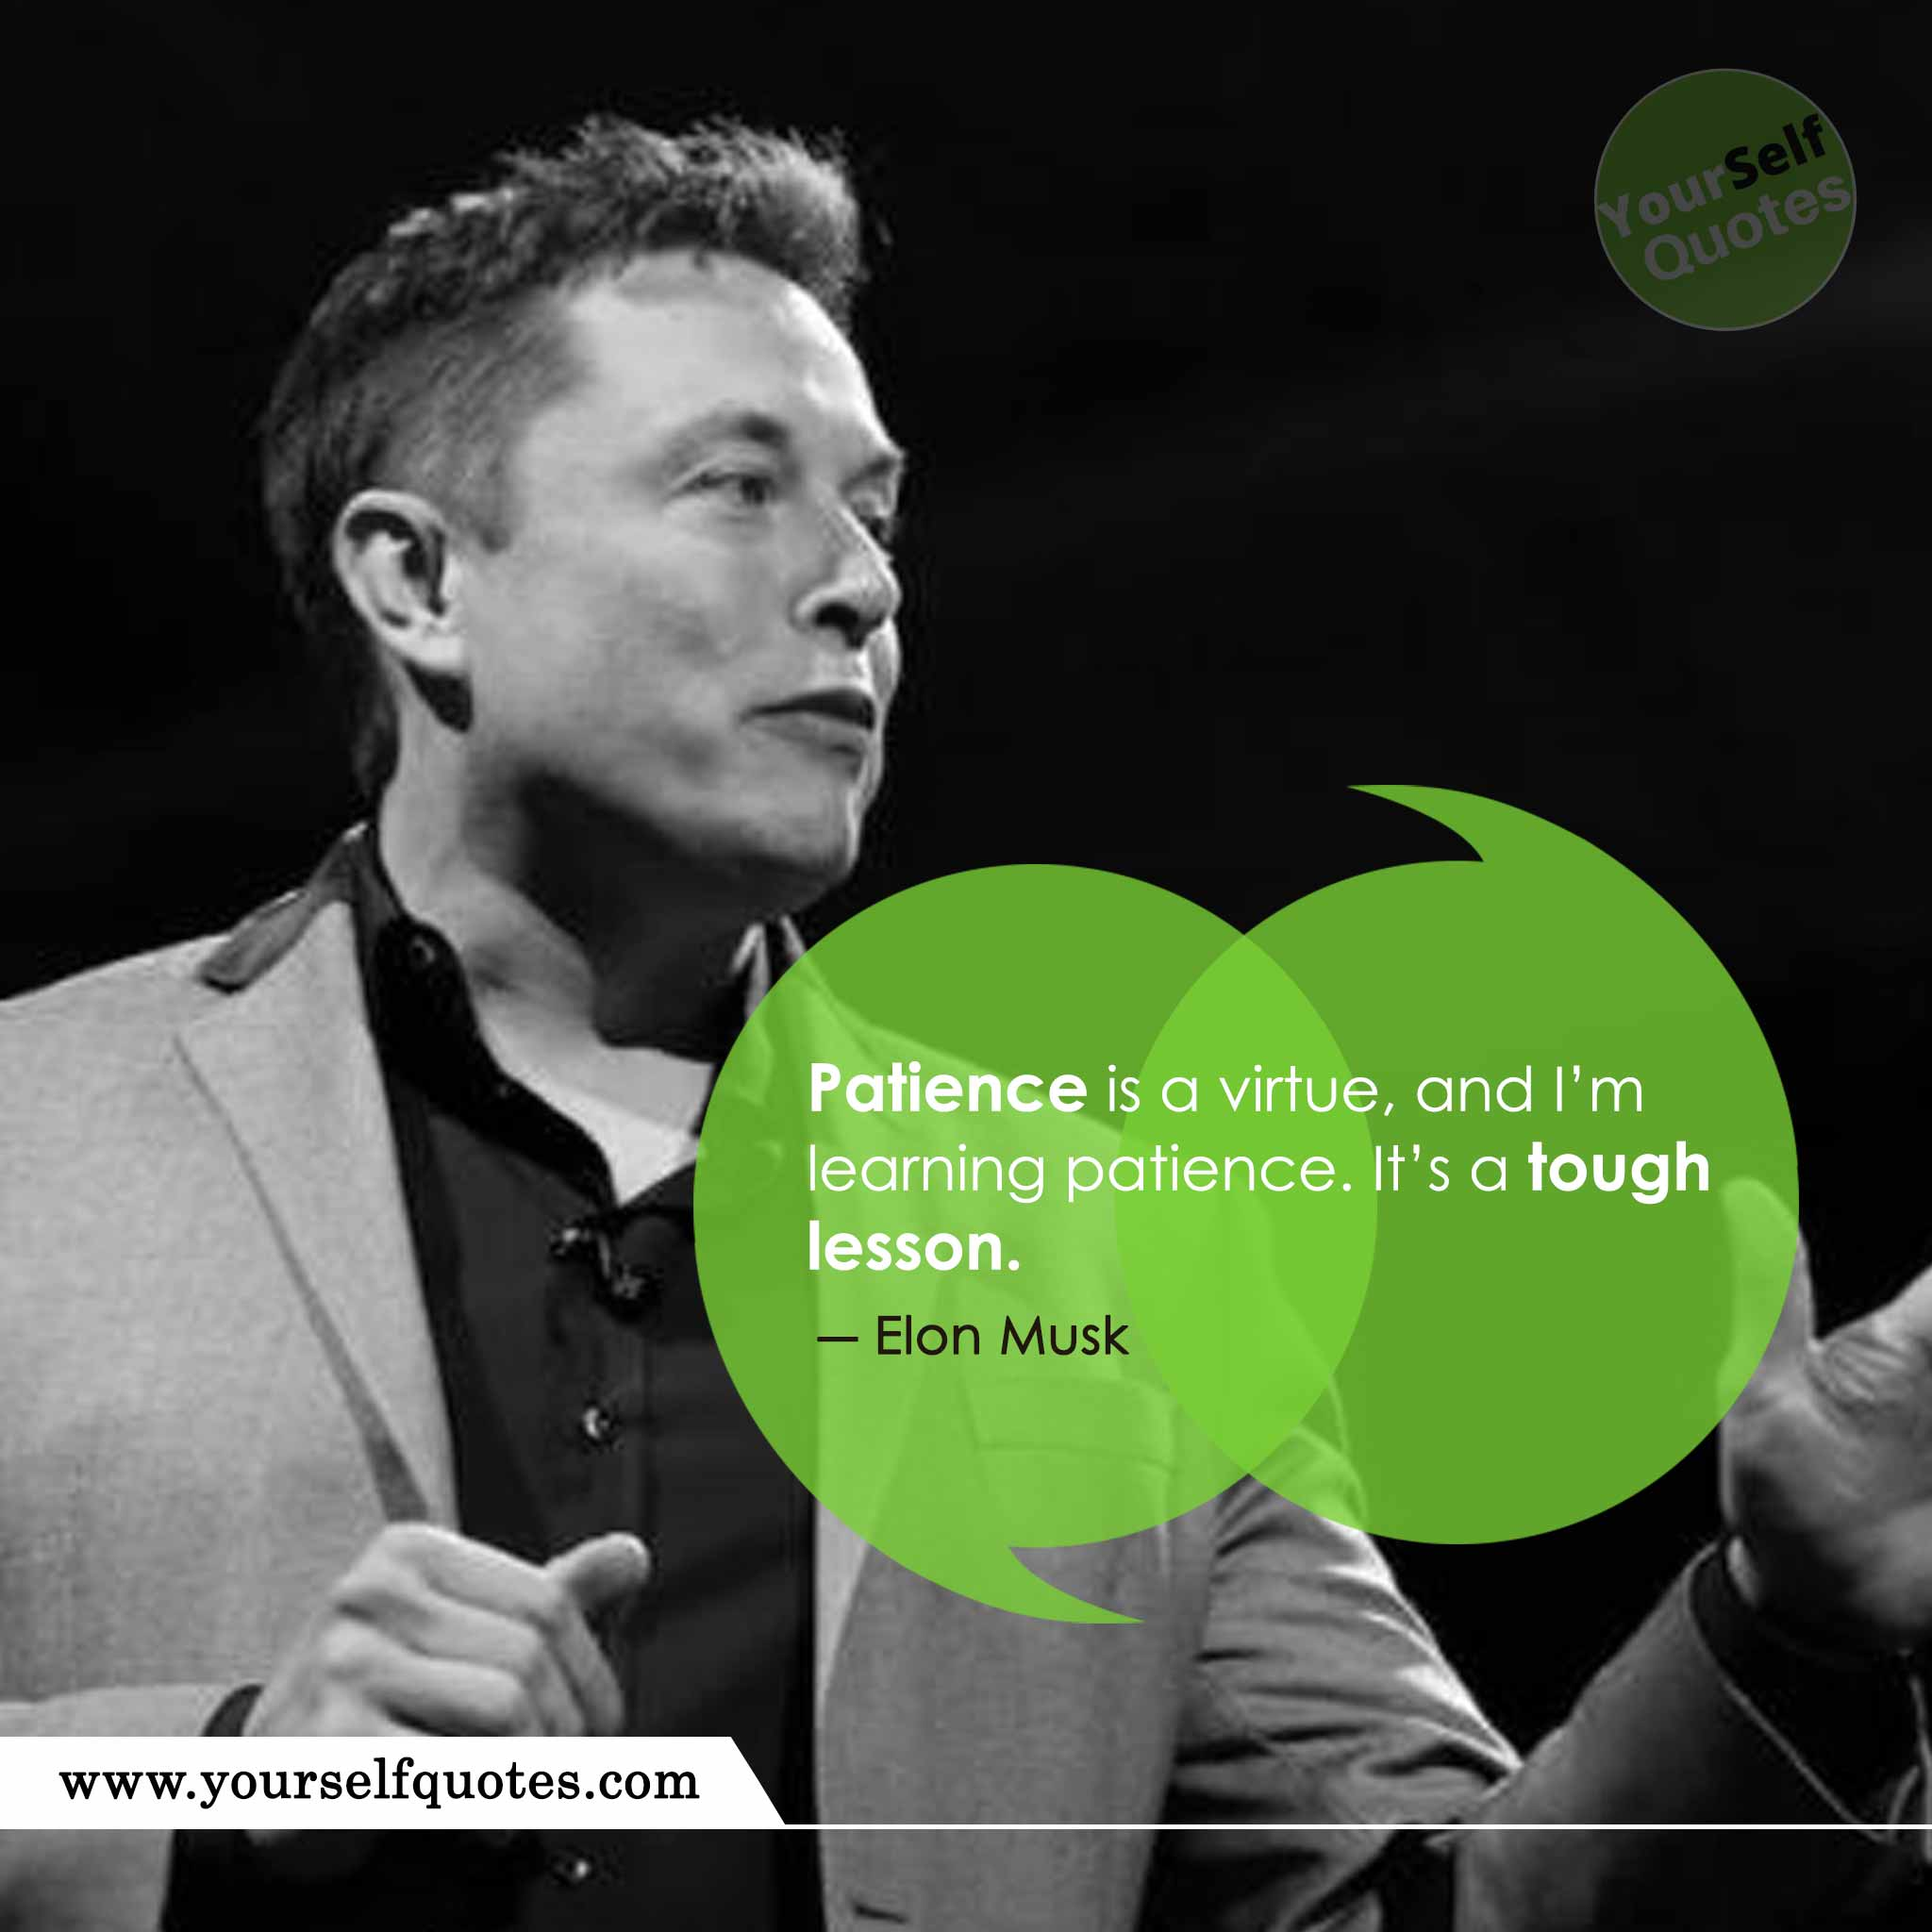 Elon Musk Quotes Images